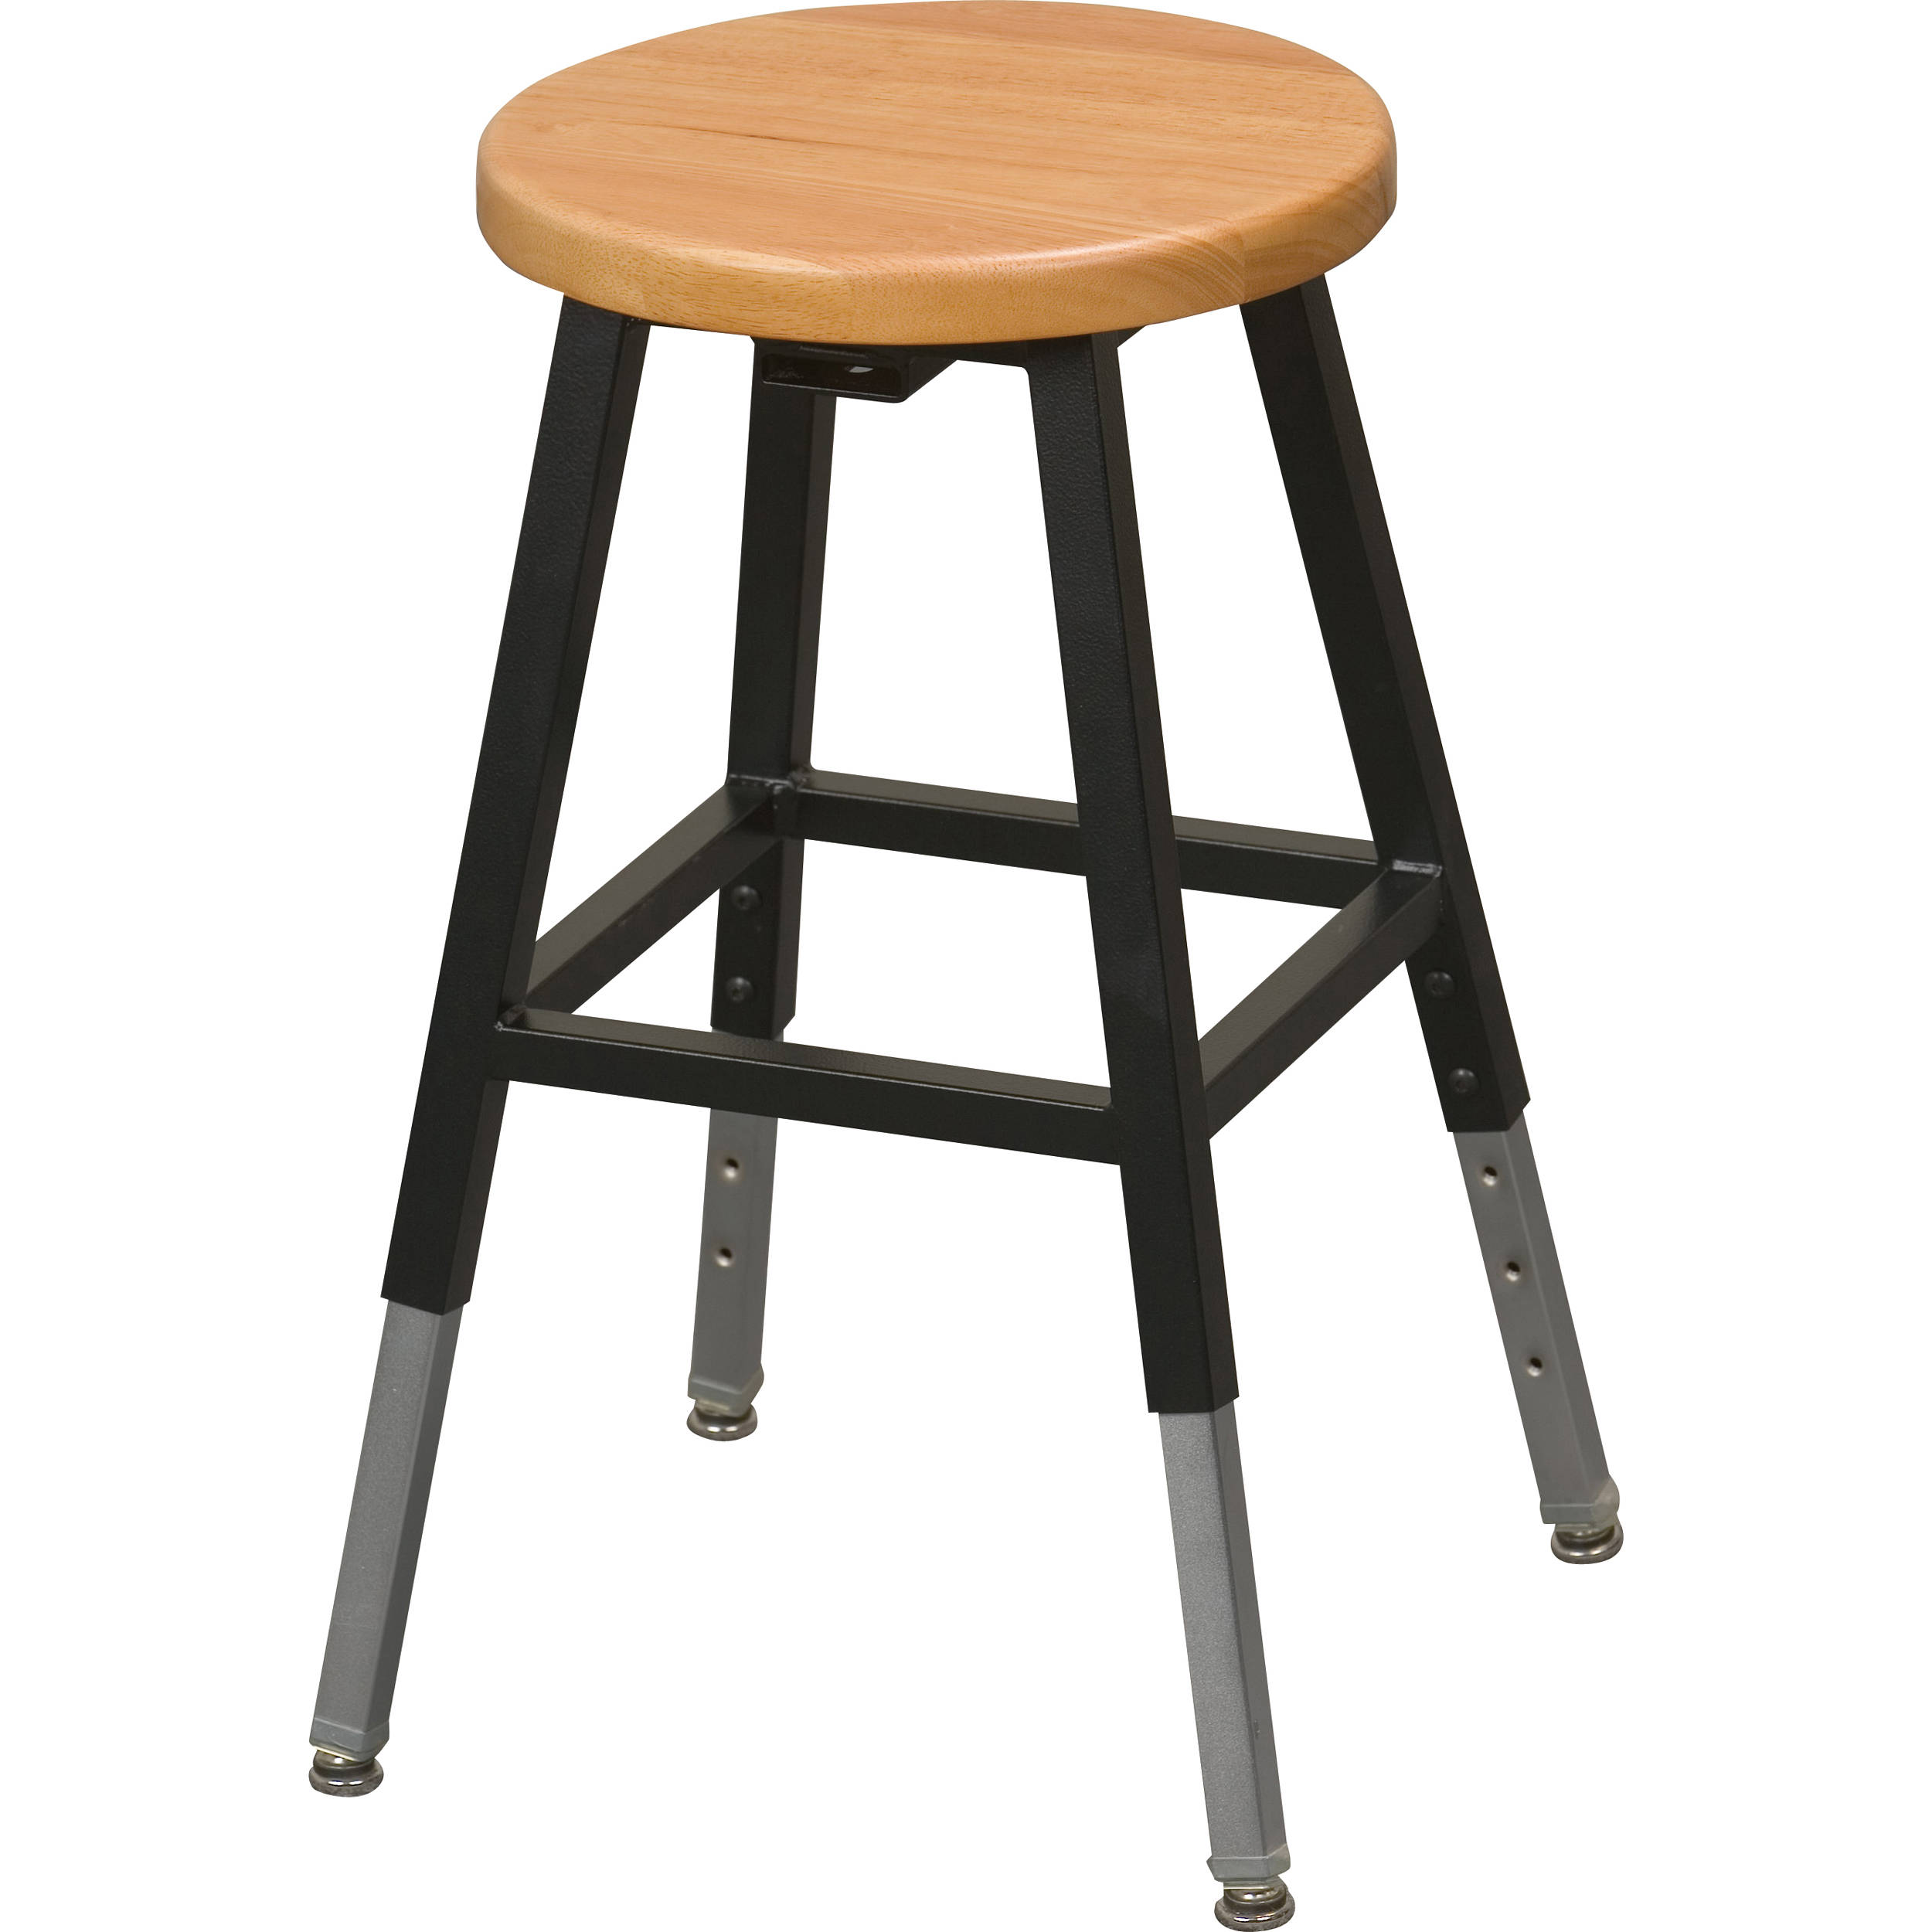 Swell Balt 34441R Adjustable Height Lab Stool Without Back Black Ibusinesslaw Wood Chair Design Ideas Ibusinesslaworg